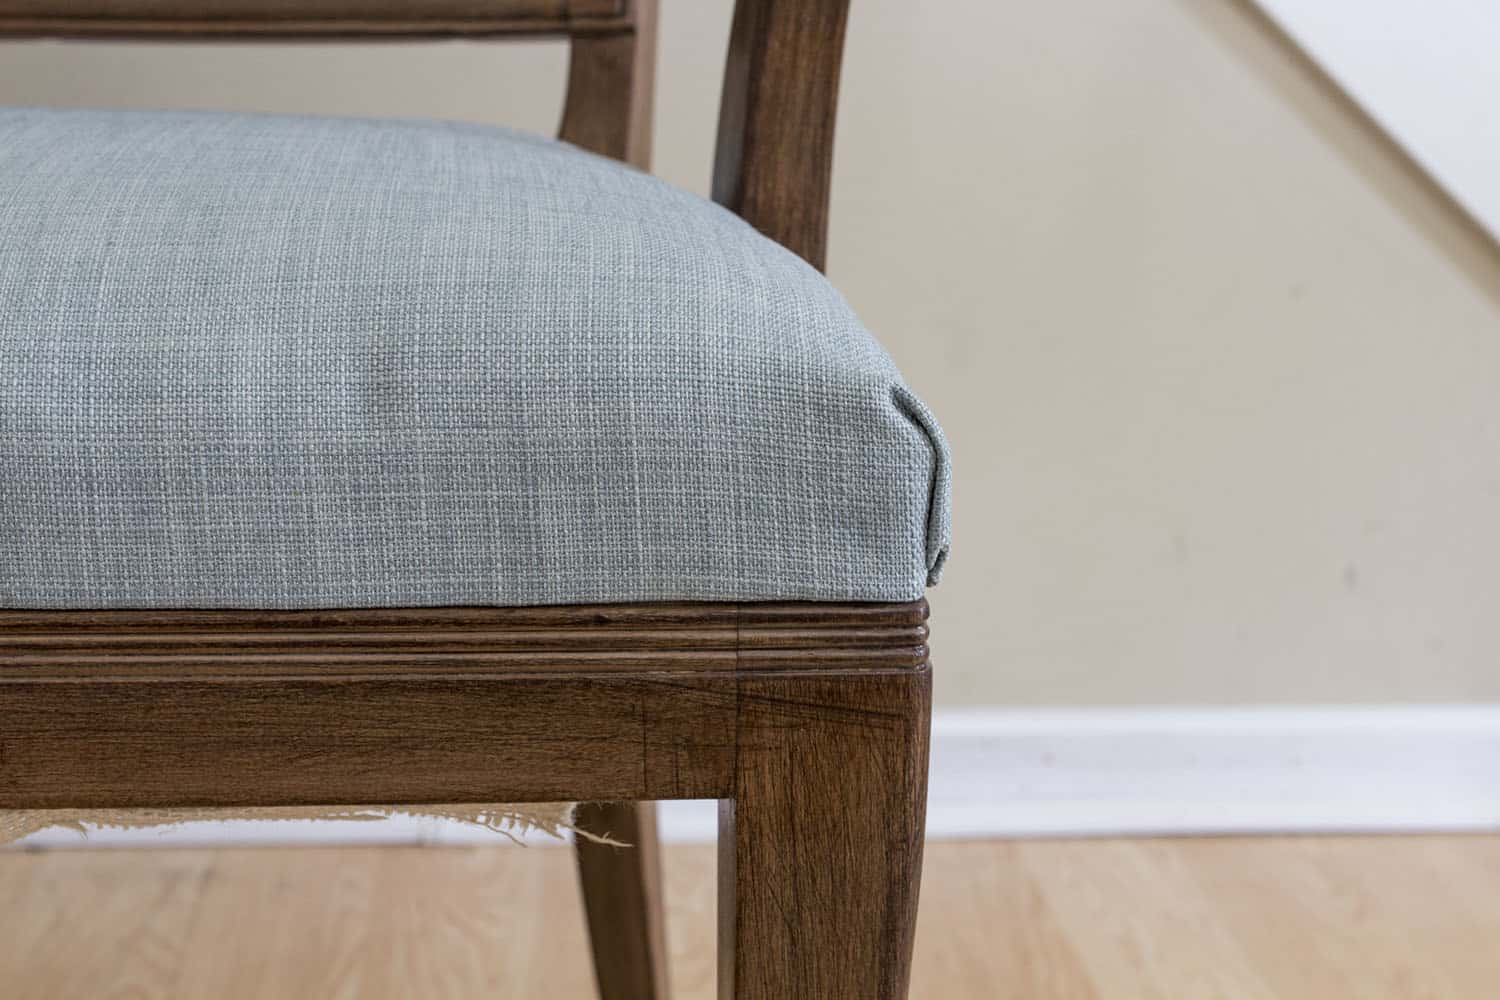 Reupholstered Wood Side Chair Part 3 Flexible Metal Tack Strips